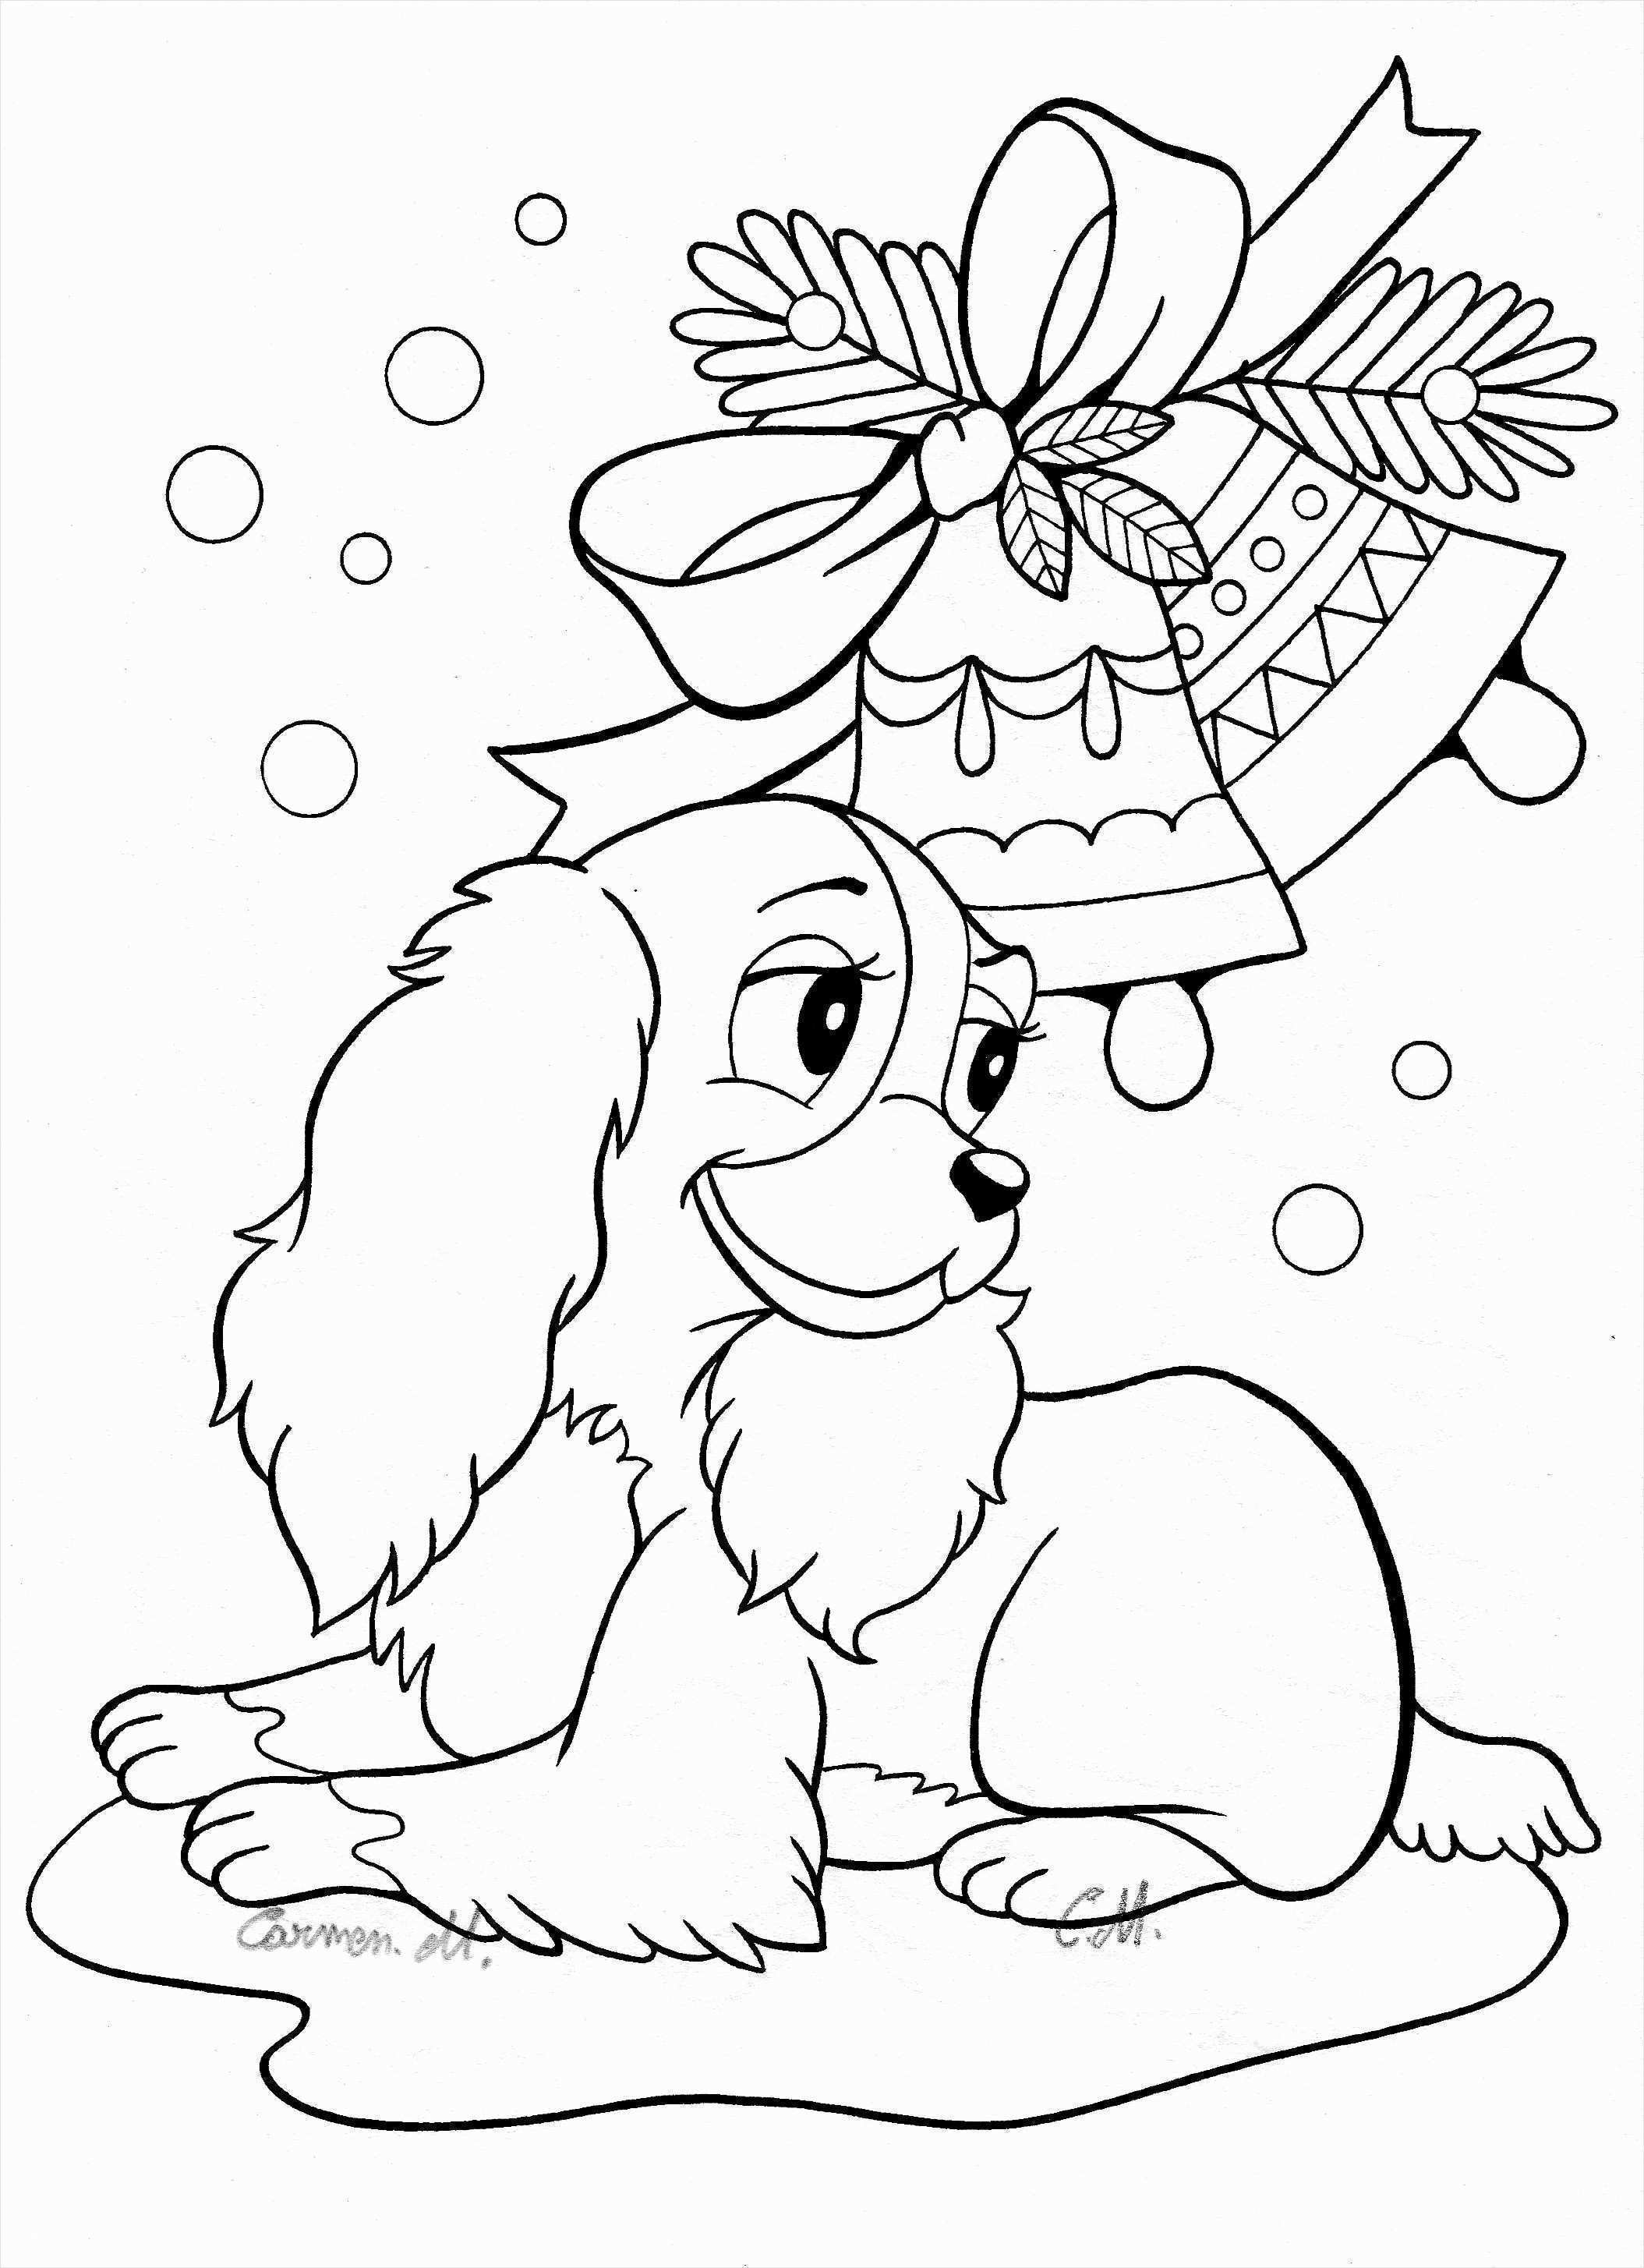 Cute Coloring Pages to Print Unique Cute Owl Coloring Pages Best